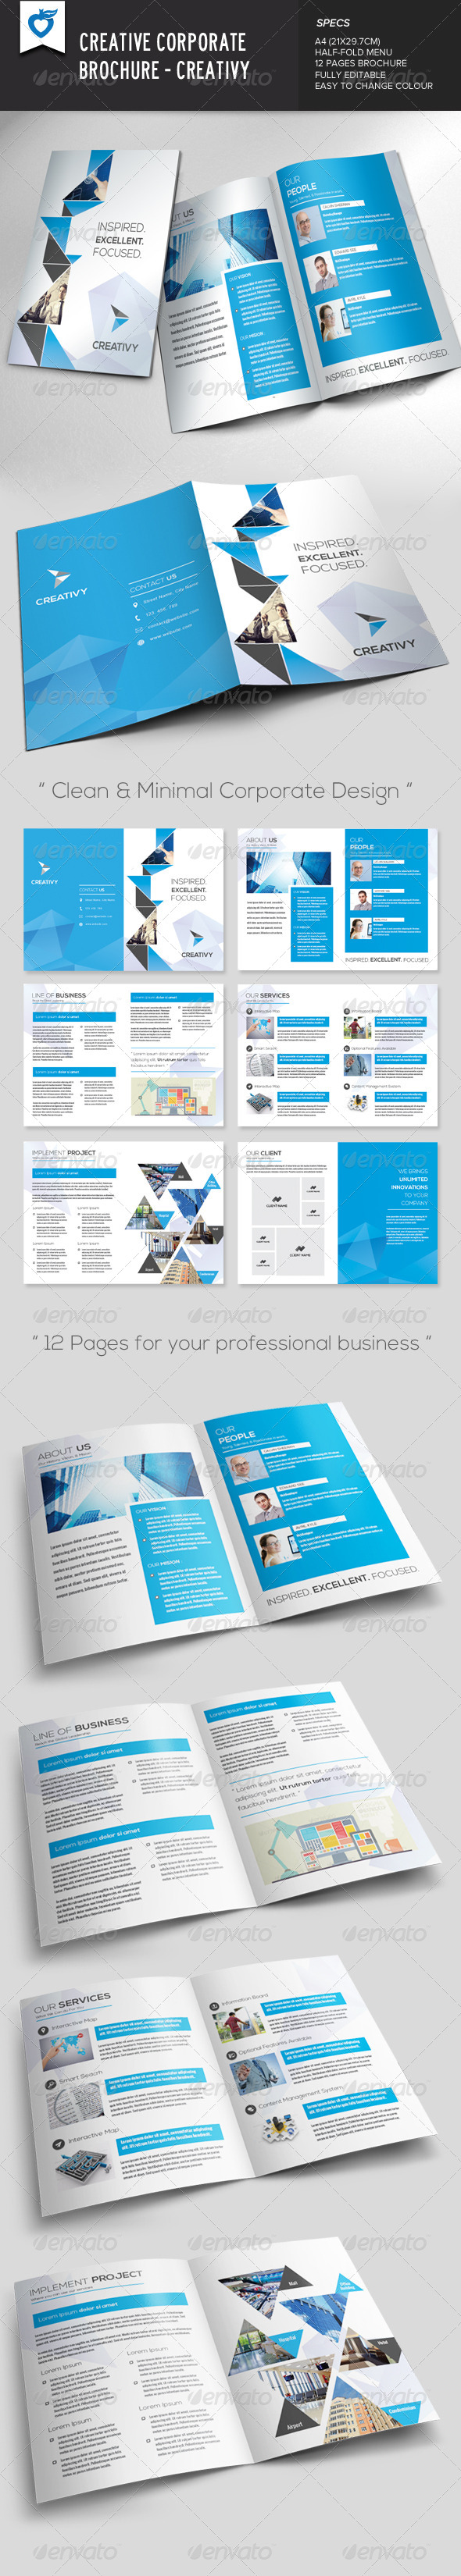 Creative Corporate Brochure – Creativy